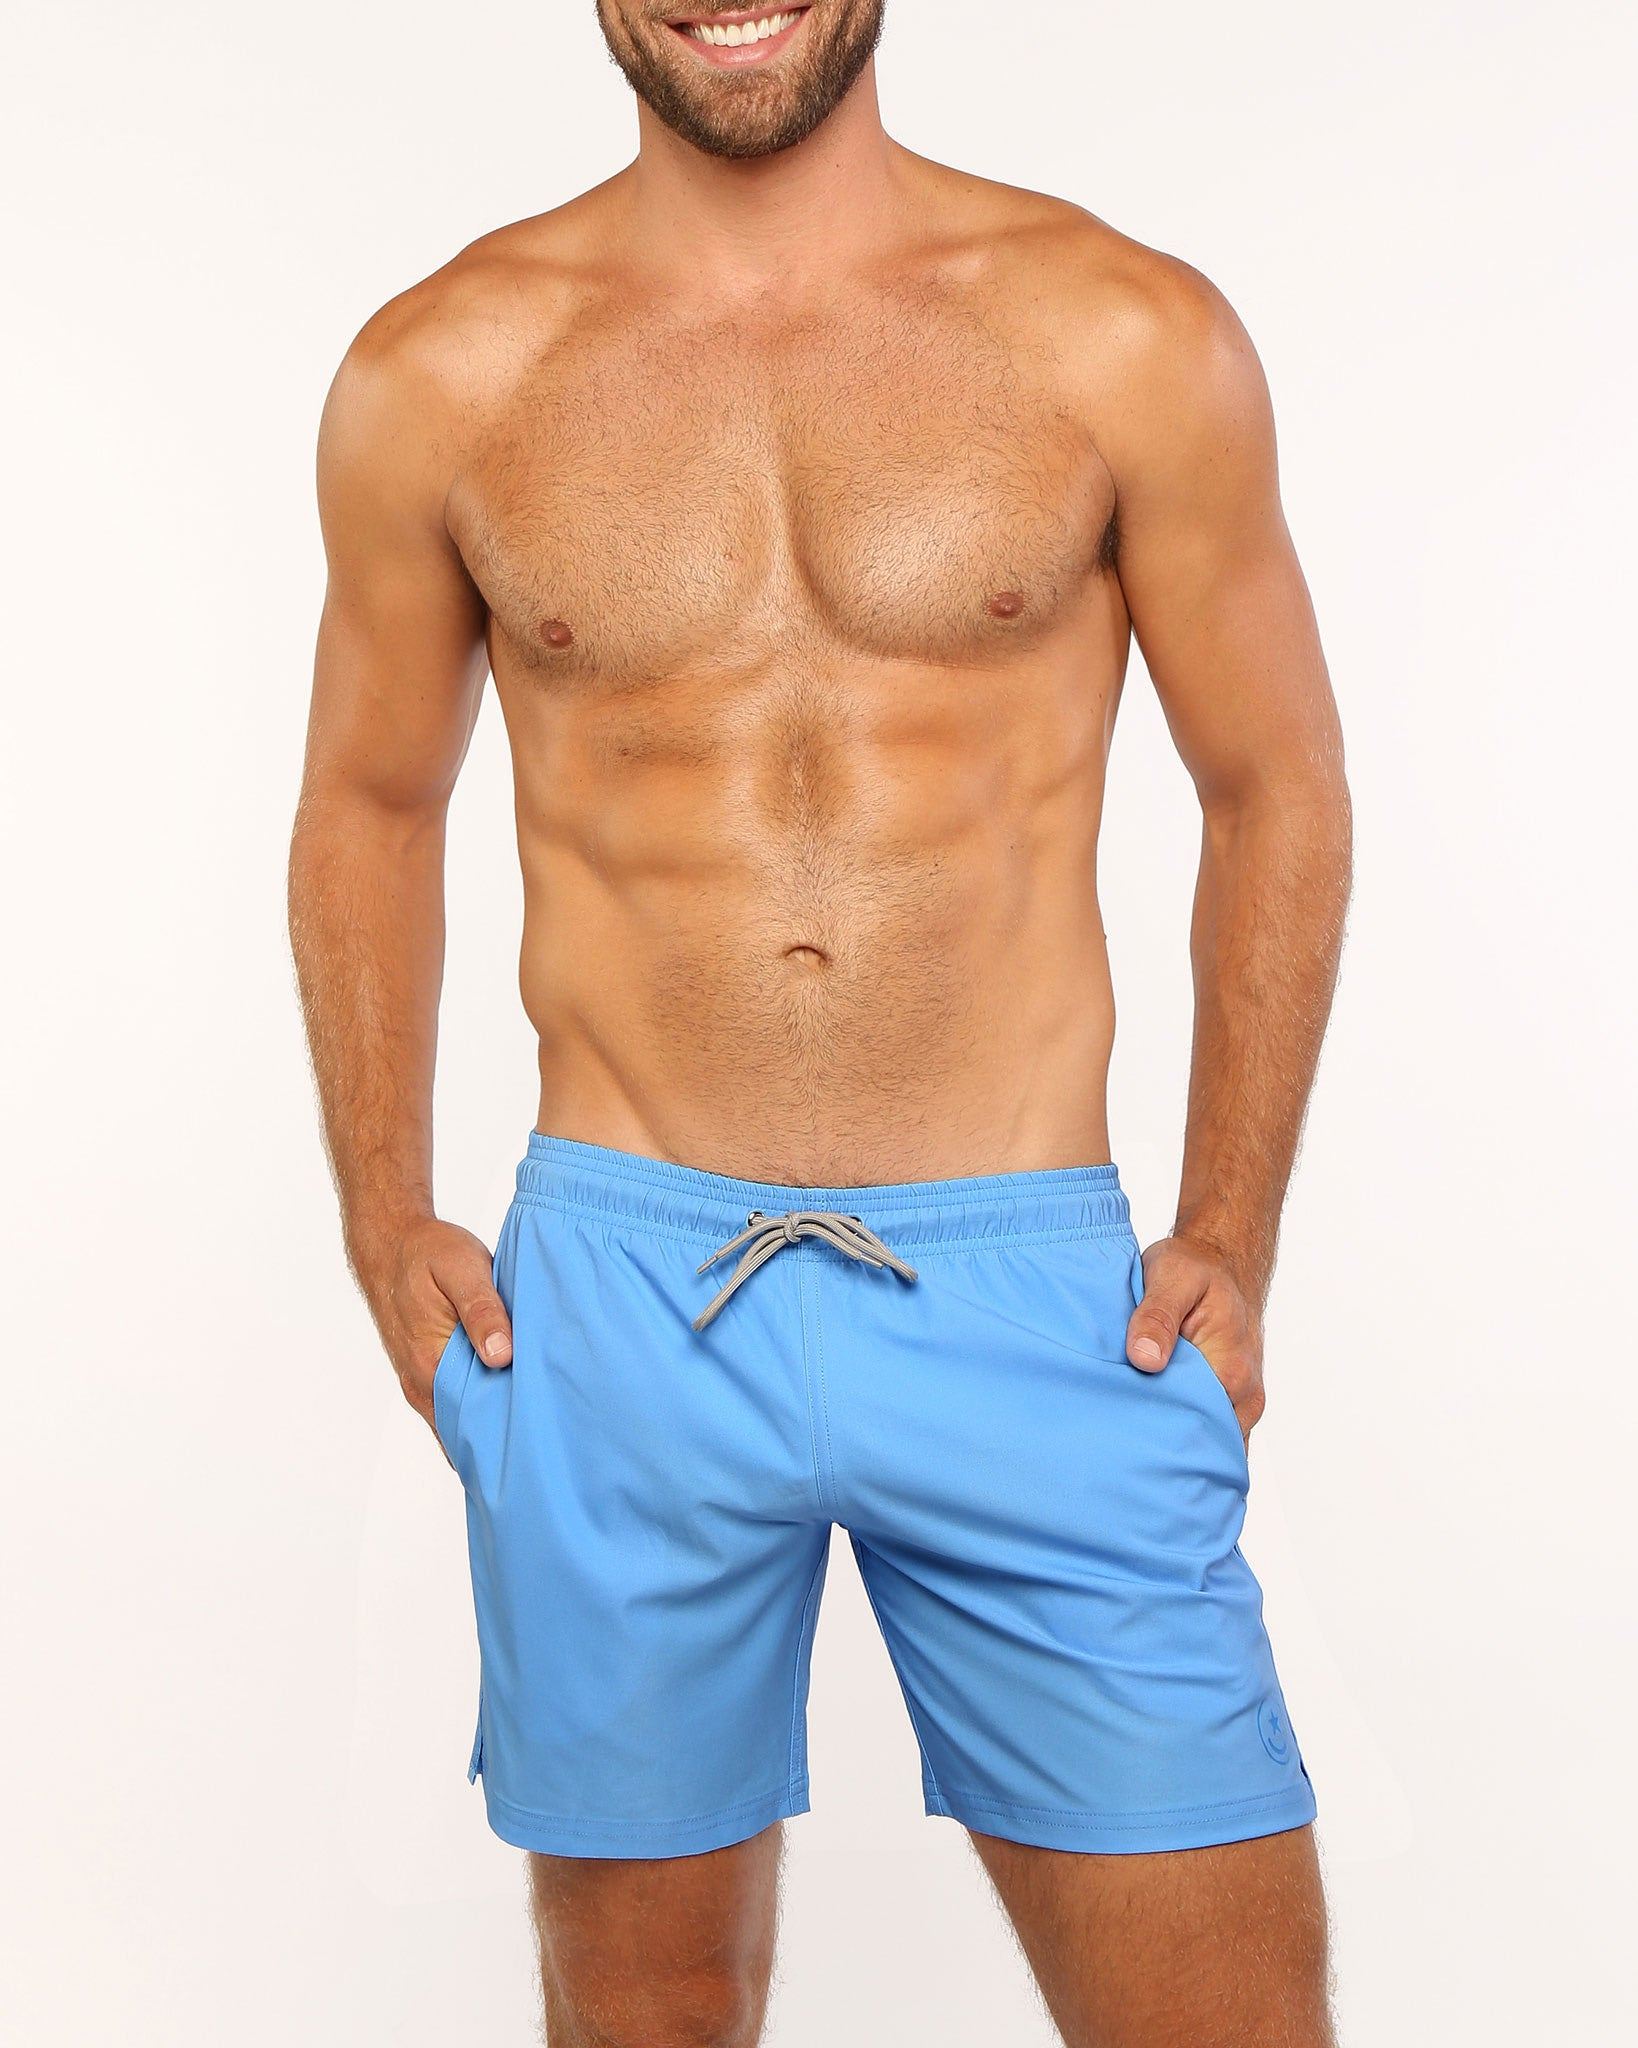 SPLASH BLUE Resort Shorts Bang Clothes Men Swimwear Swimsuits